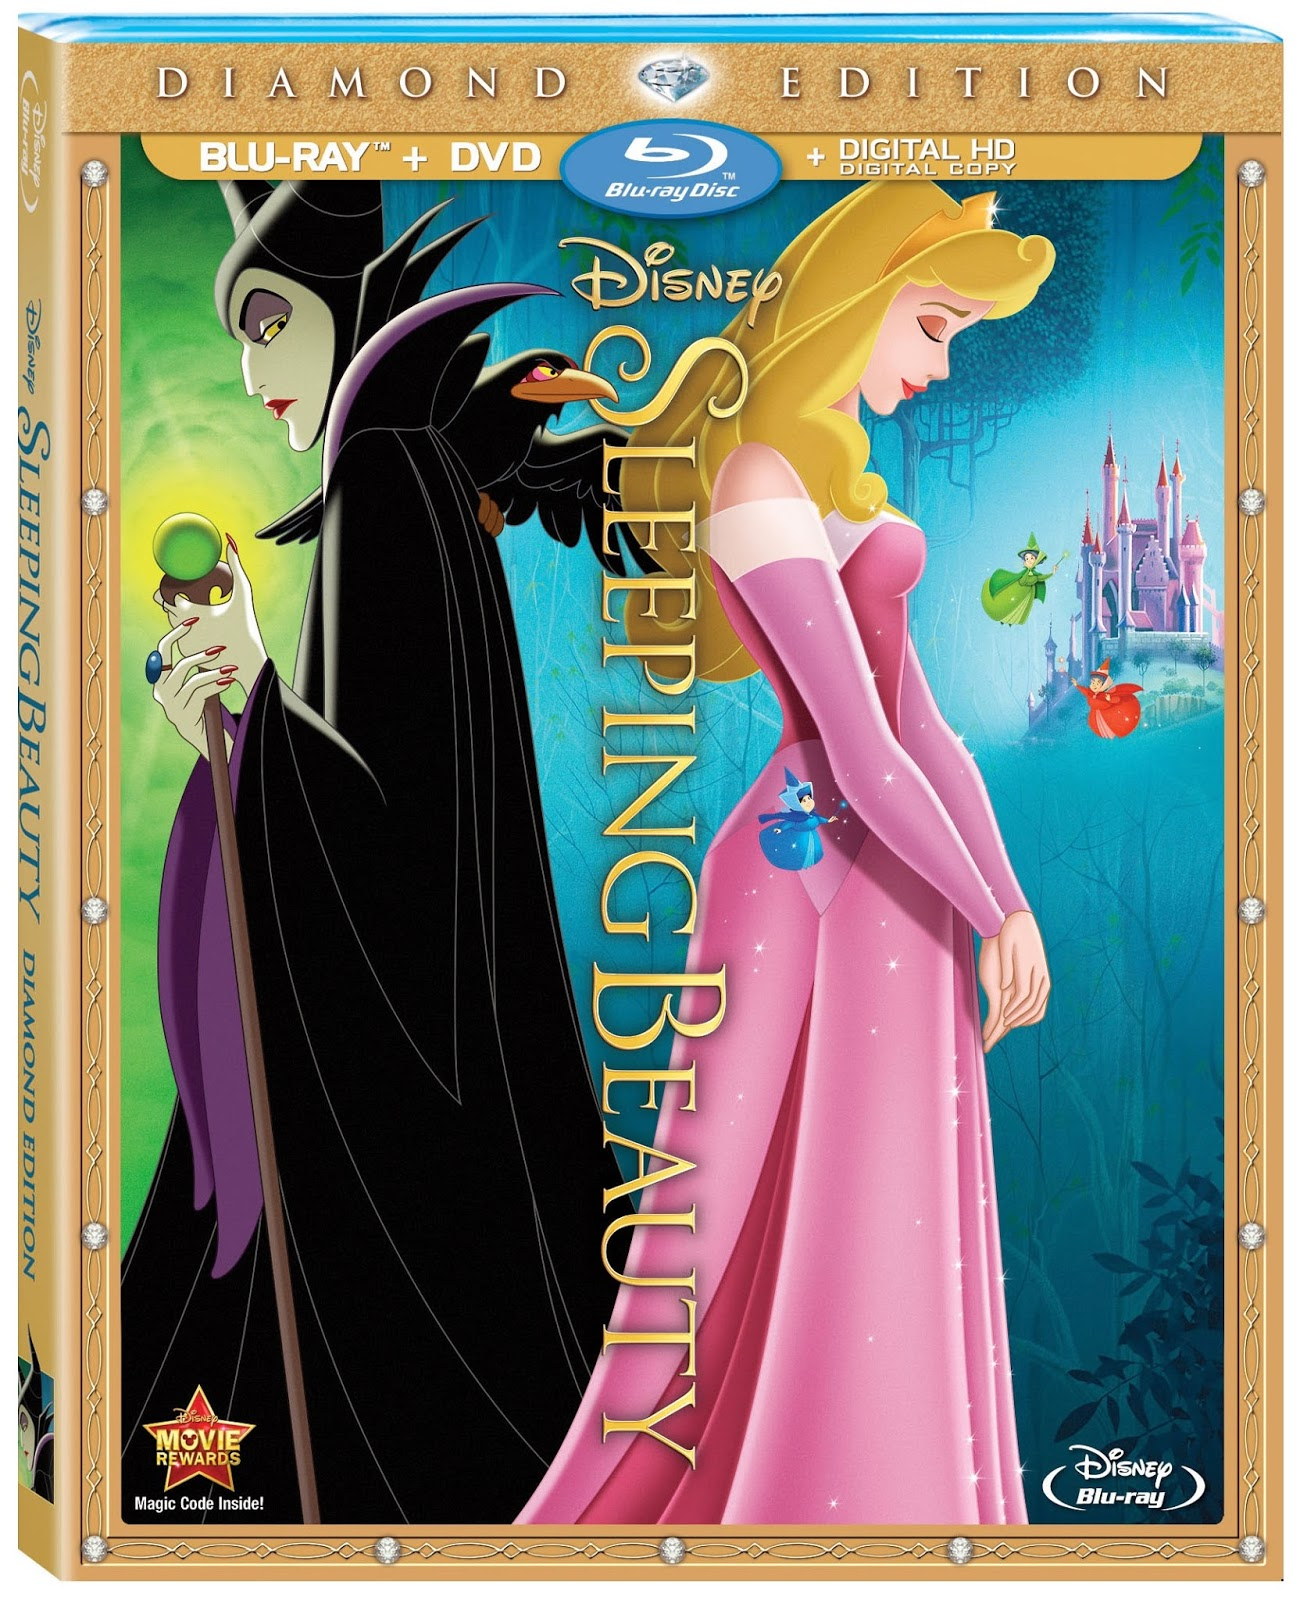 SleepingBeautyDiamondEditionBlurayCombo